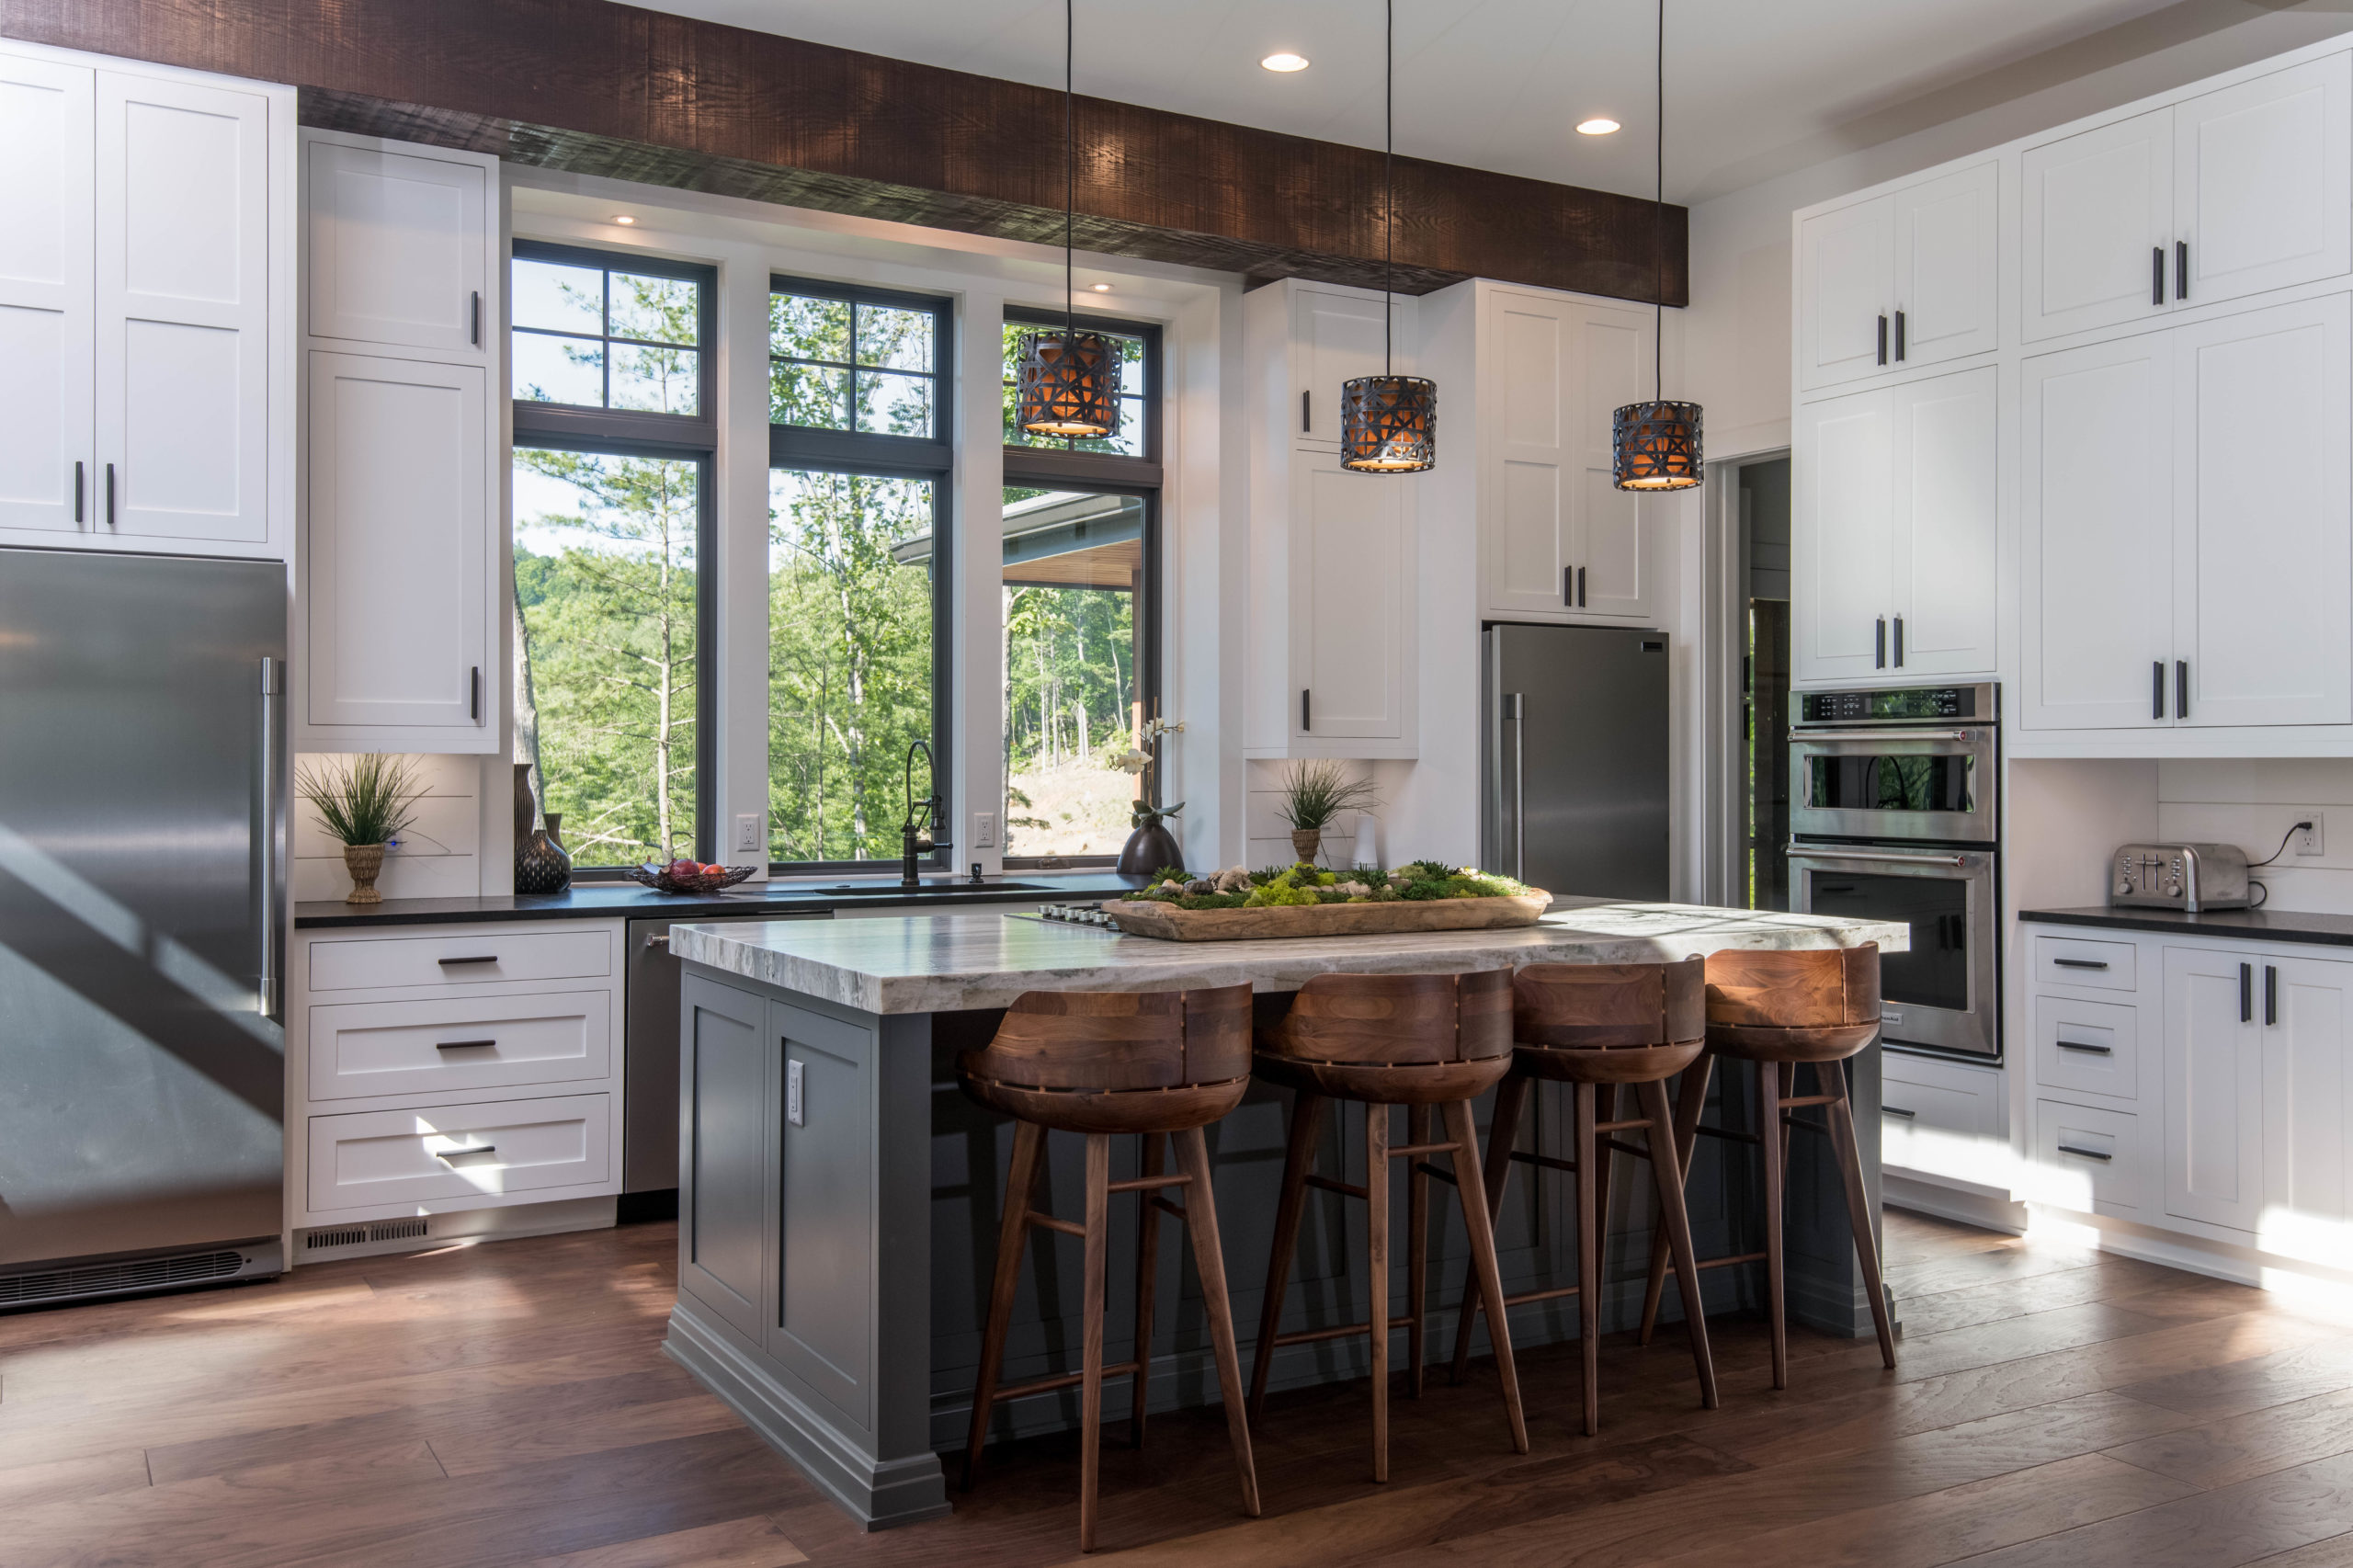 Living Stone Named Most Innovative Sustainable Home Builder in North Carolina